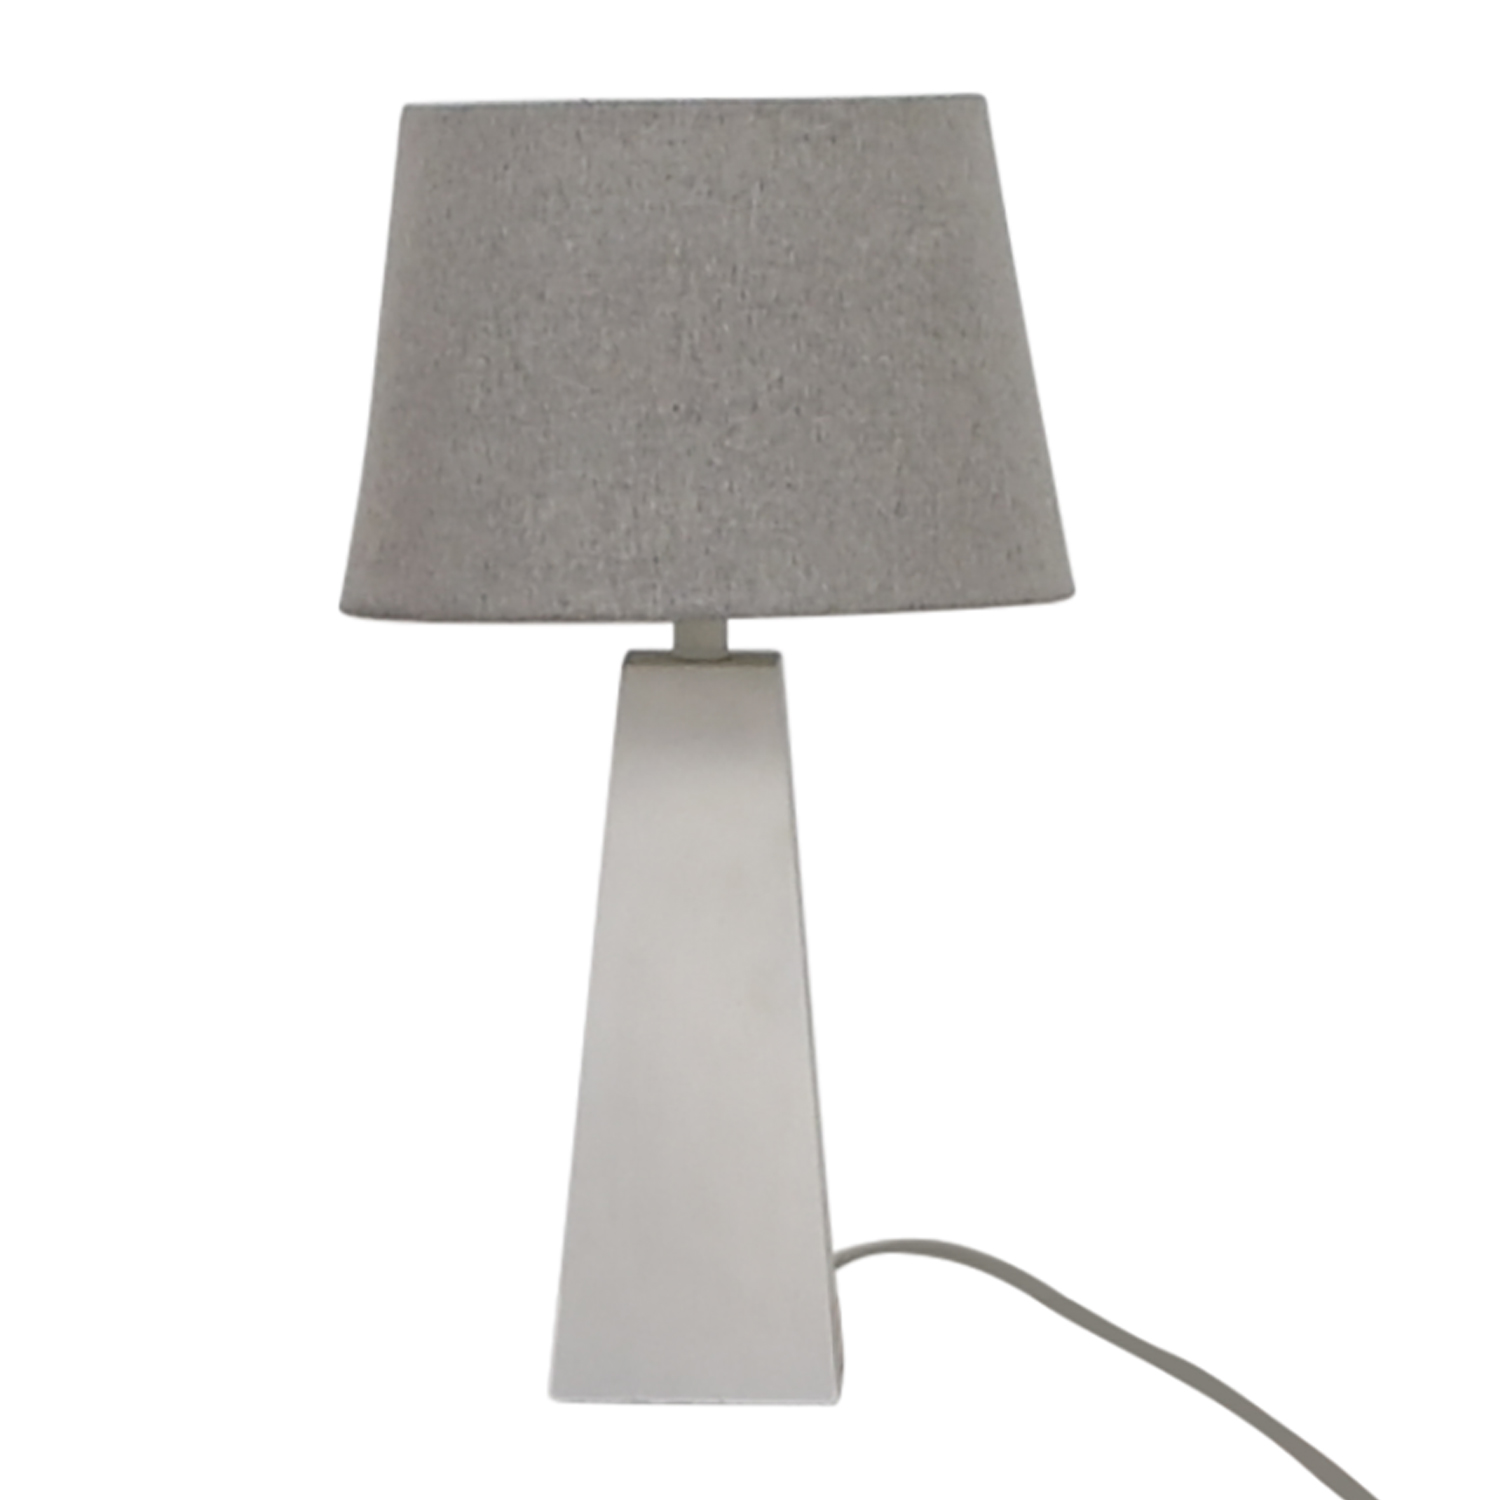 Target Target White Base with Silver Shade Lamp Lamps